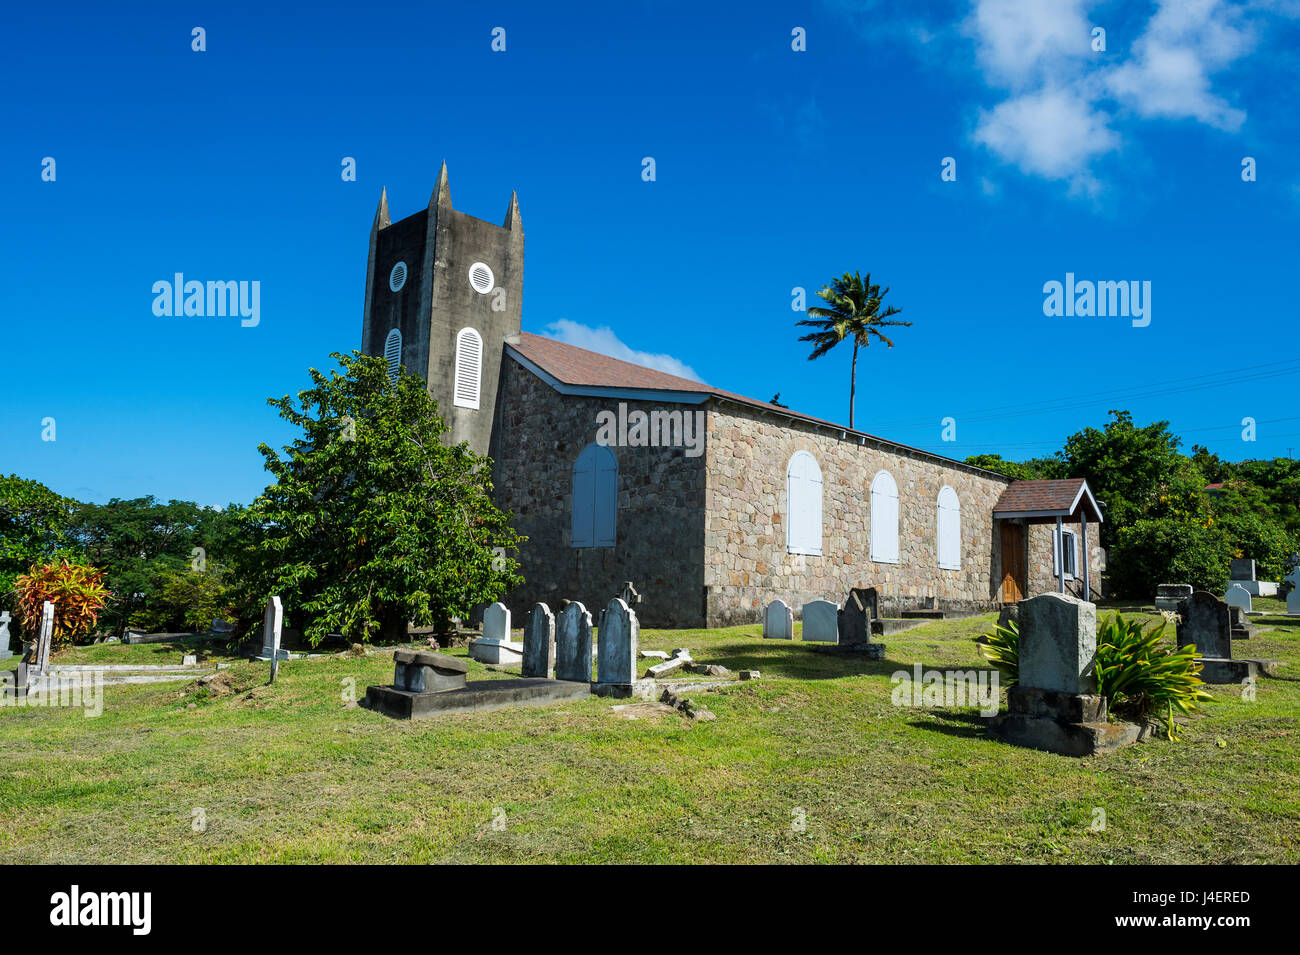 St. Peter's Anglican church, Montserrat, British Overseas Territory, West Indies, Caribbean, Central America - Stock Image